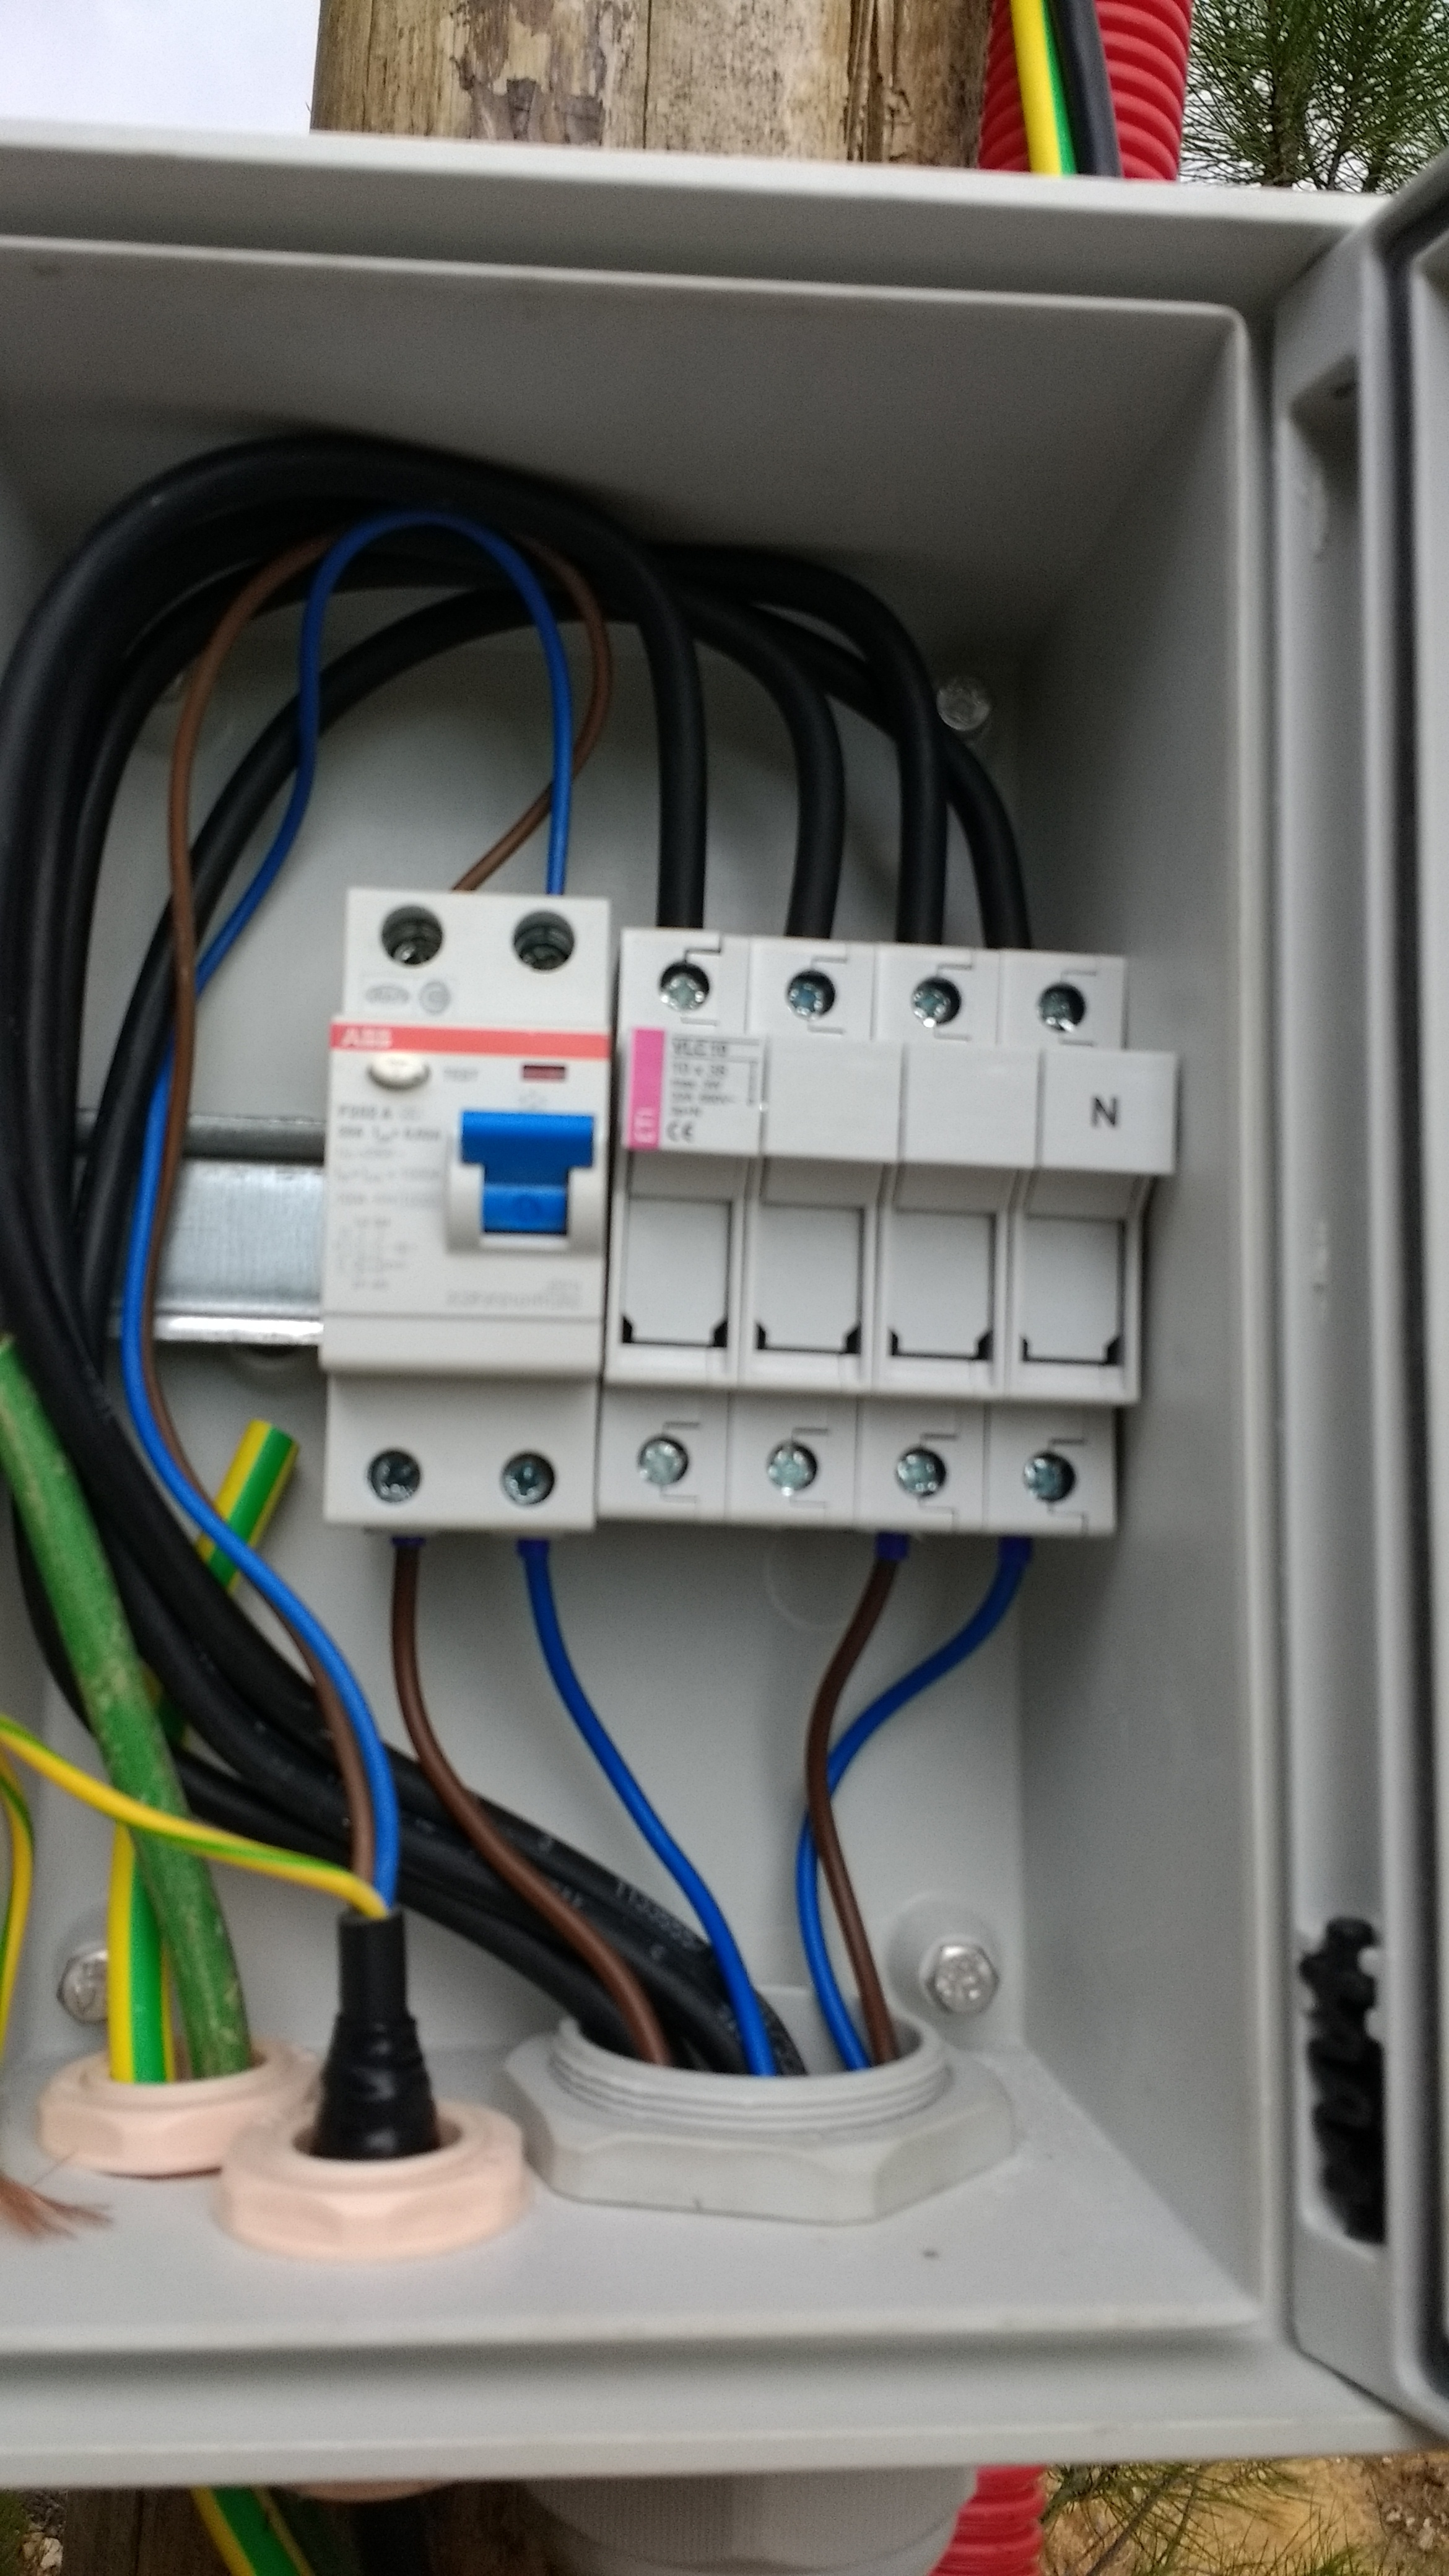 Attractive Breaker Boxes Explained Crest - The Best Electrical ...